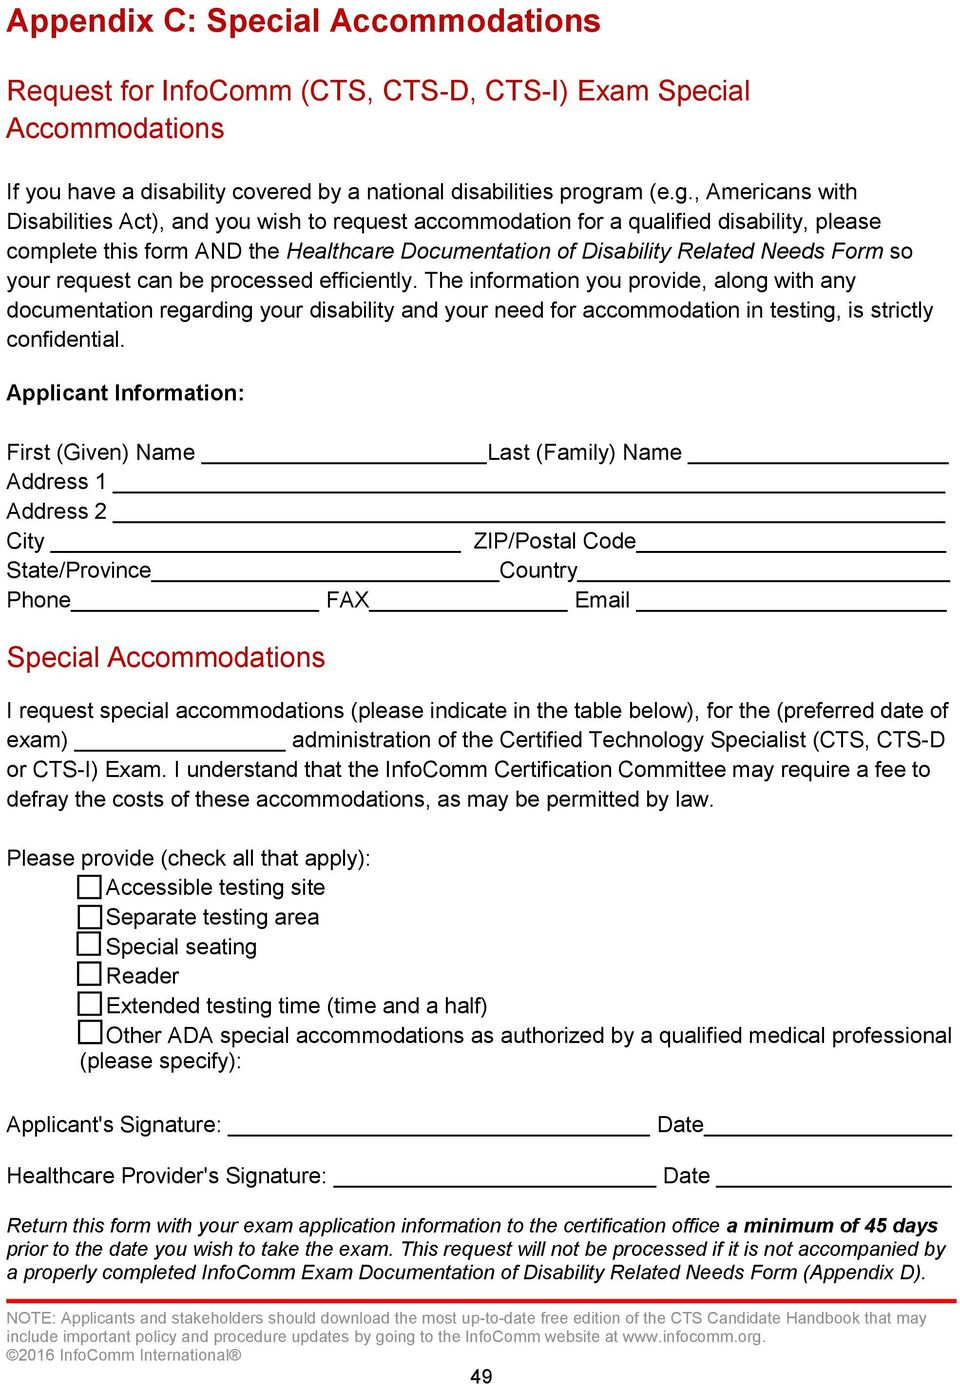 , Americans with Disabilities Act), and you wish to request accommodation for a qualified disability, please complete this form AND the Healthcare Documentation of Disability Related Needs Form so